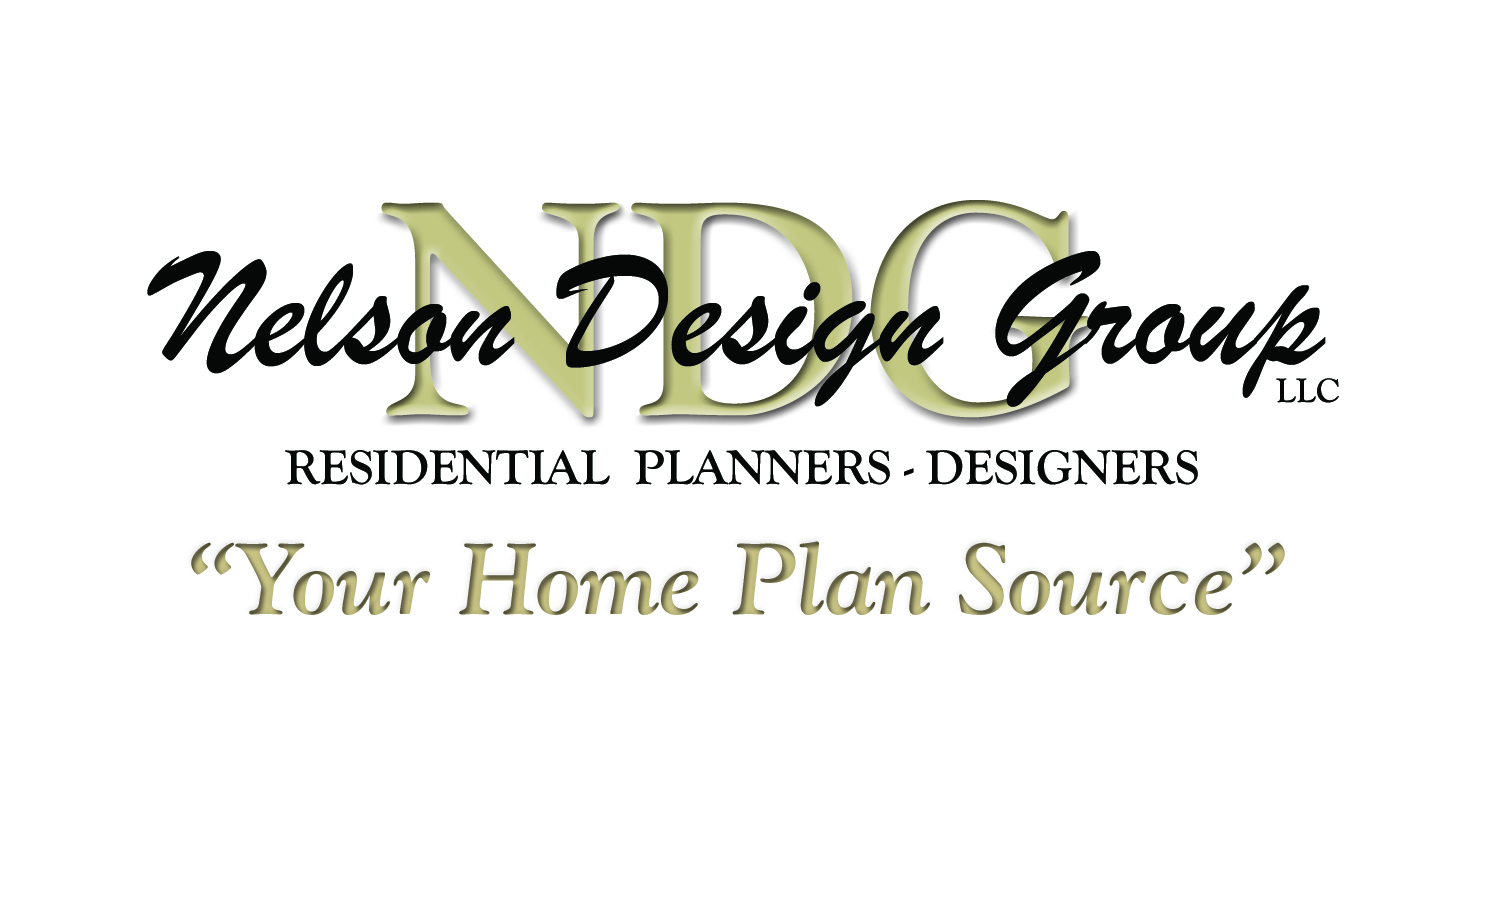 Best Selling Home Design Firm, Nelson Design Group Welcomes Outdoor  Lighting Perspectives As Their Exclusive Outdoor Lighting Service Partner.